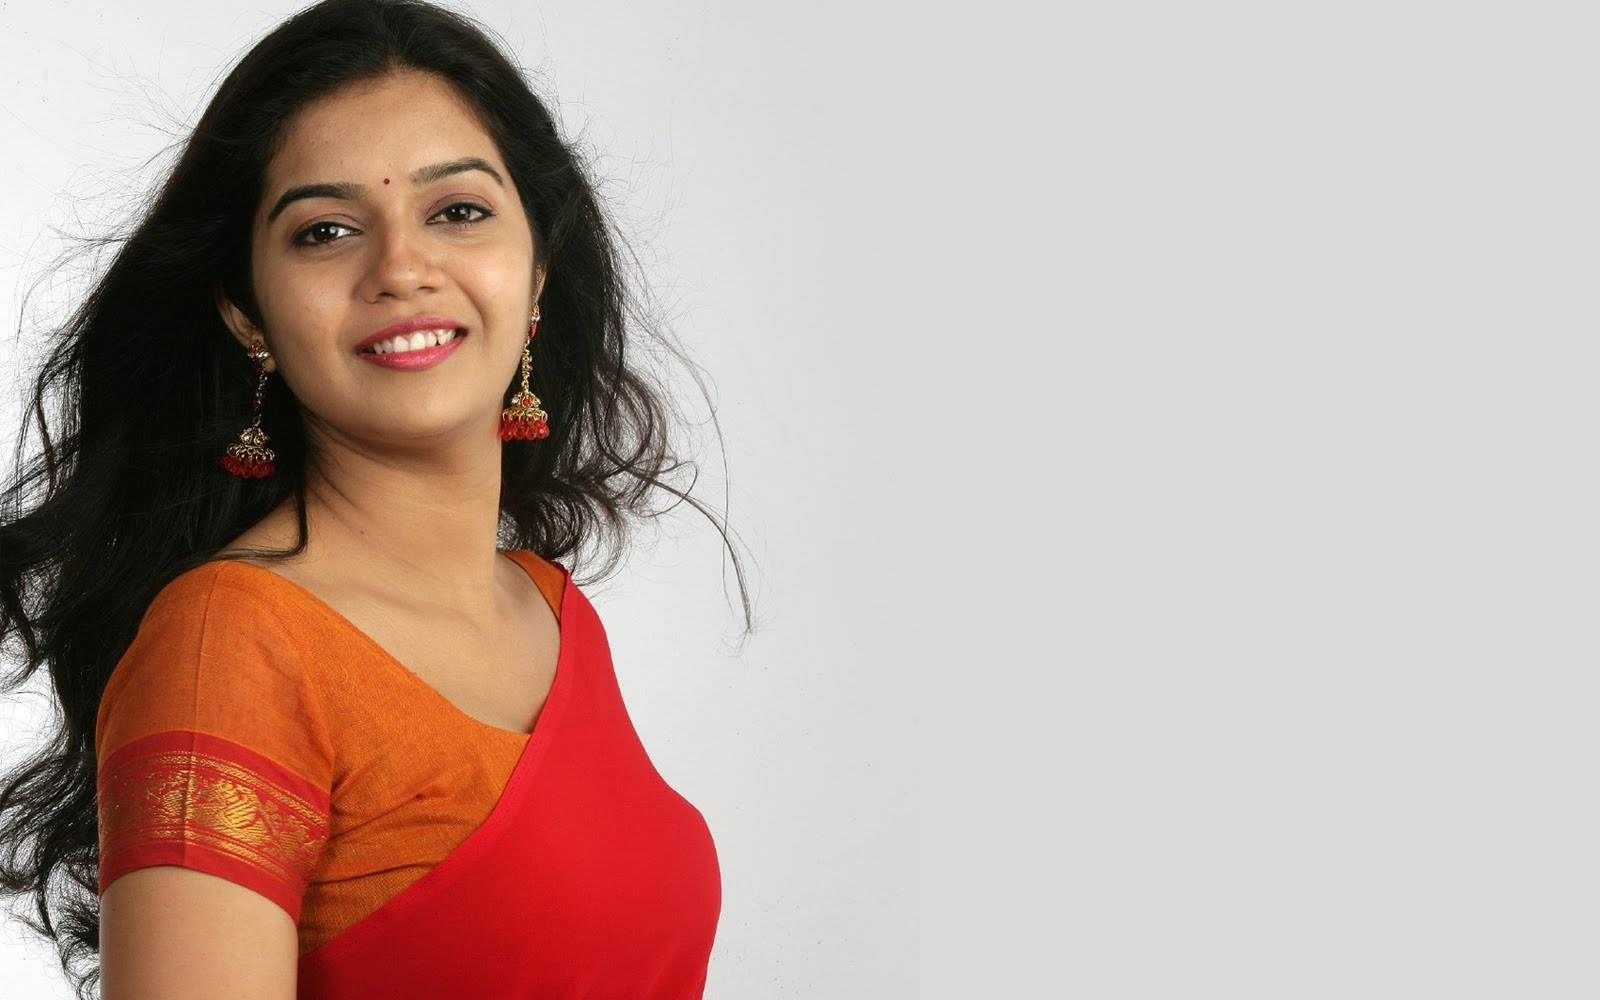 colours-swathi-legs-young-babes-with-nice-buts